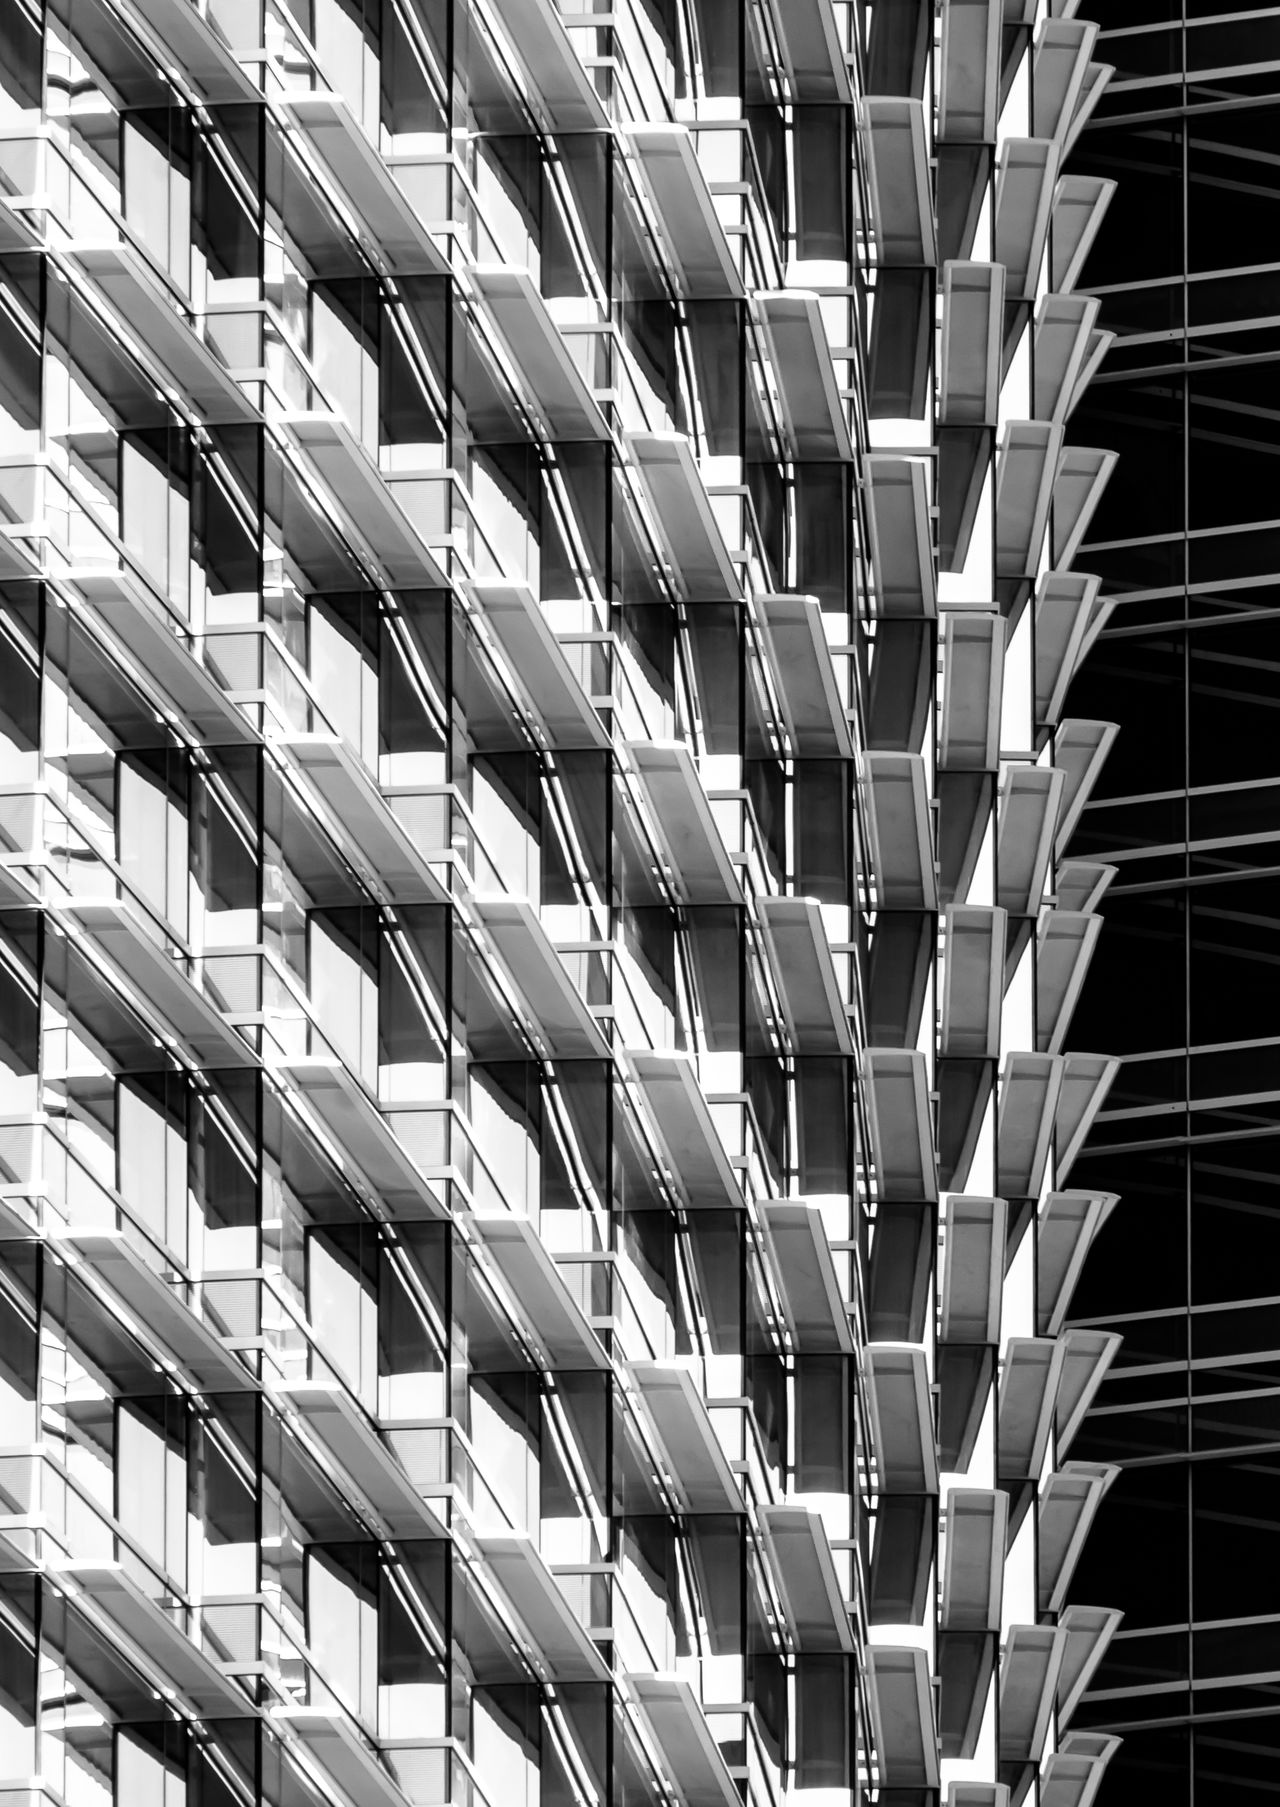 Abstract Architecture Backgrounds Blackandwhite Building Exterior Built Structure City Contrast Day Full Frame Low Angle View No People Outdoors Pattern Repetition Skyscraper Window